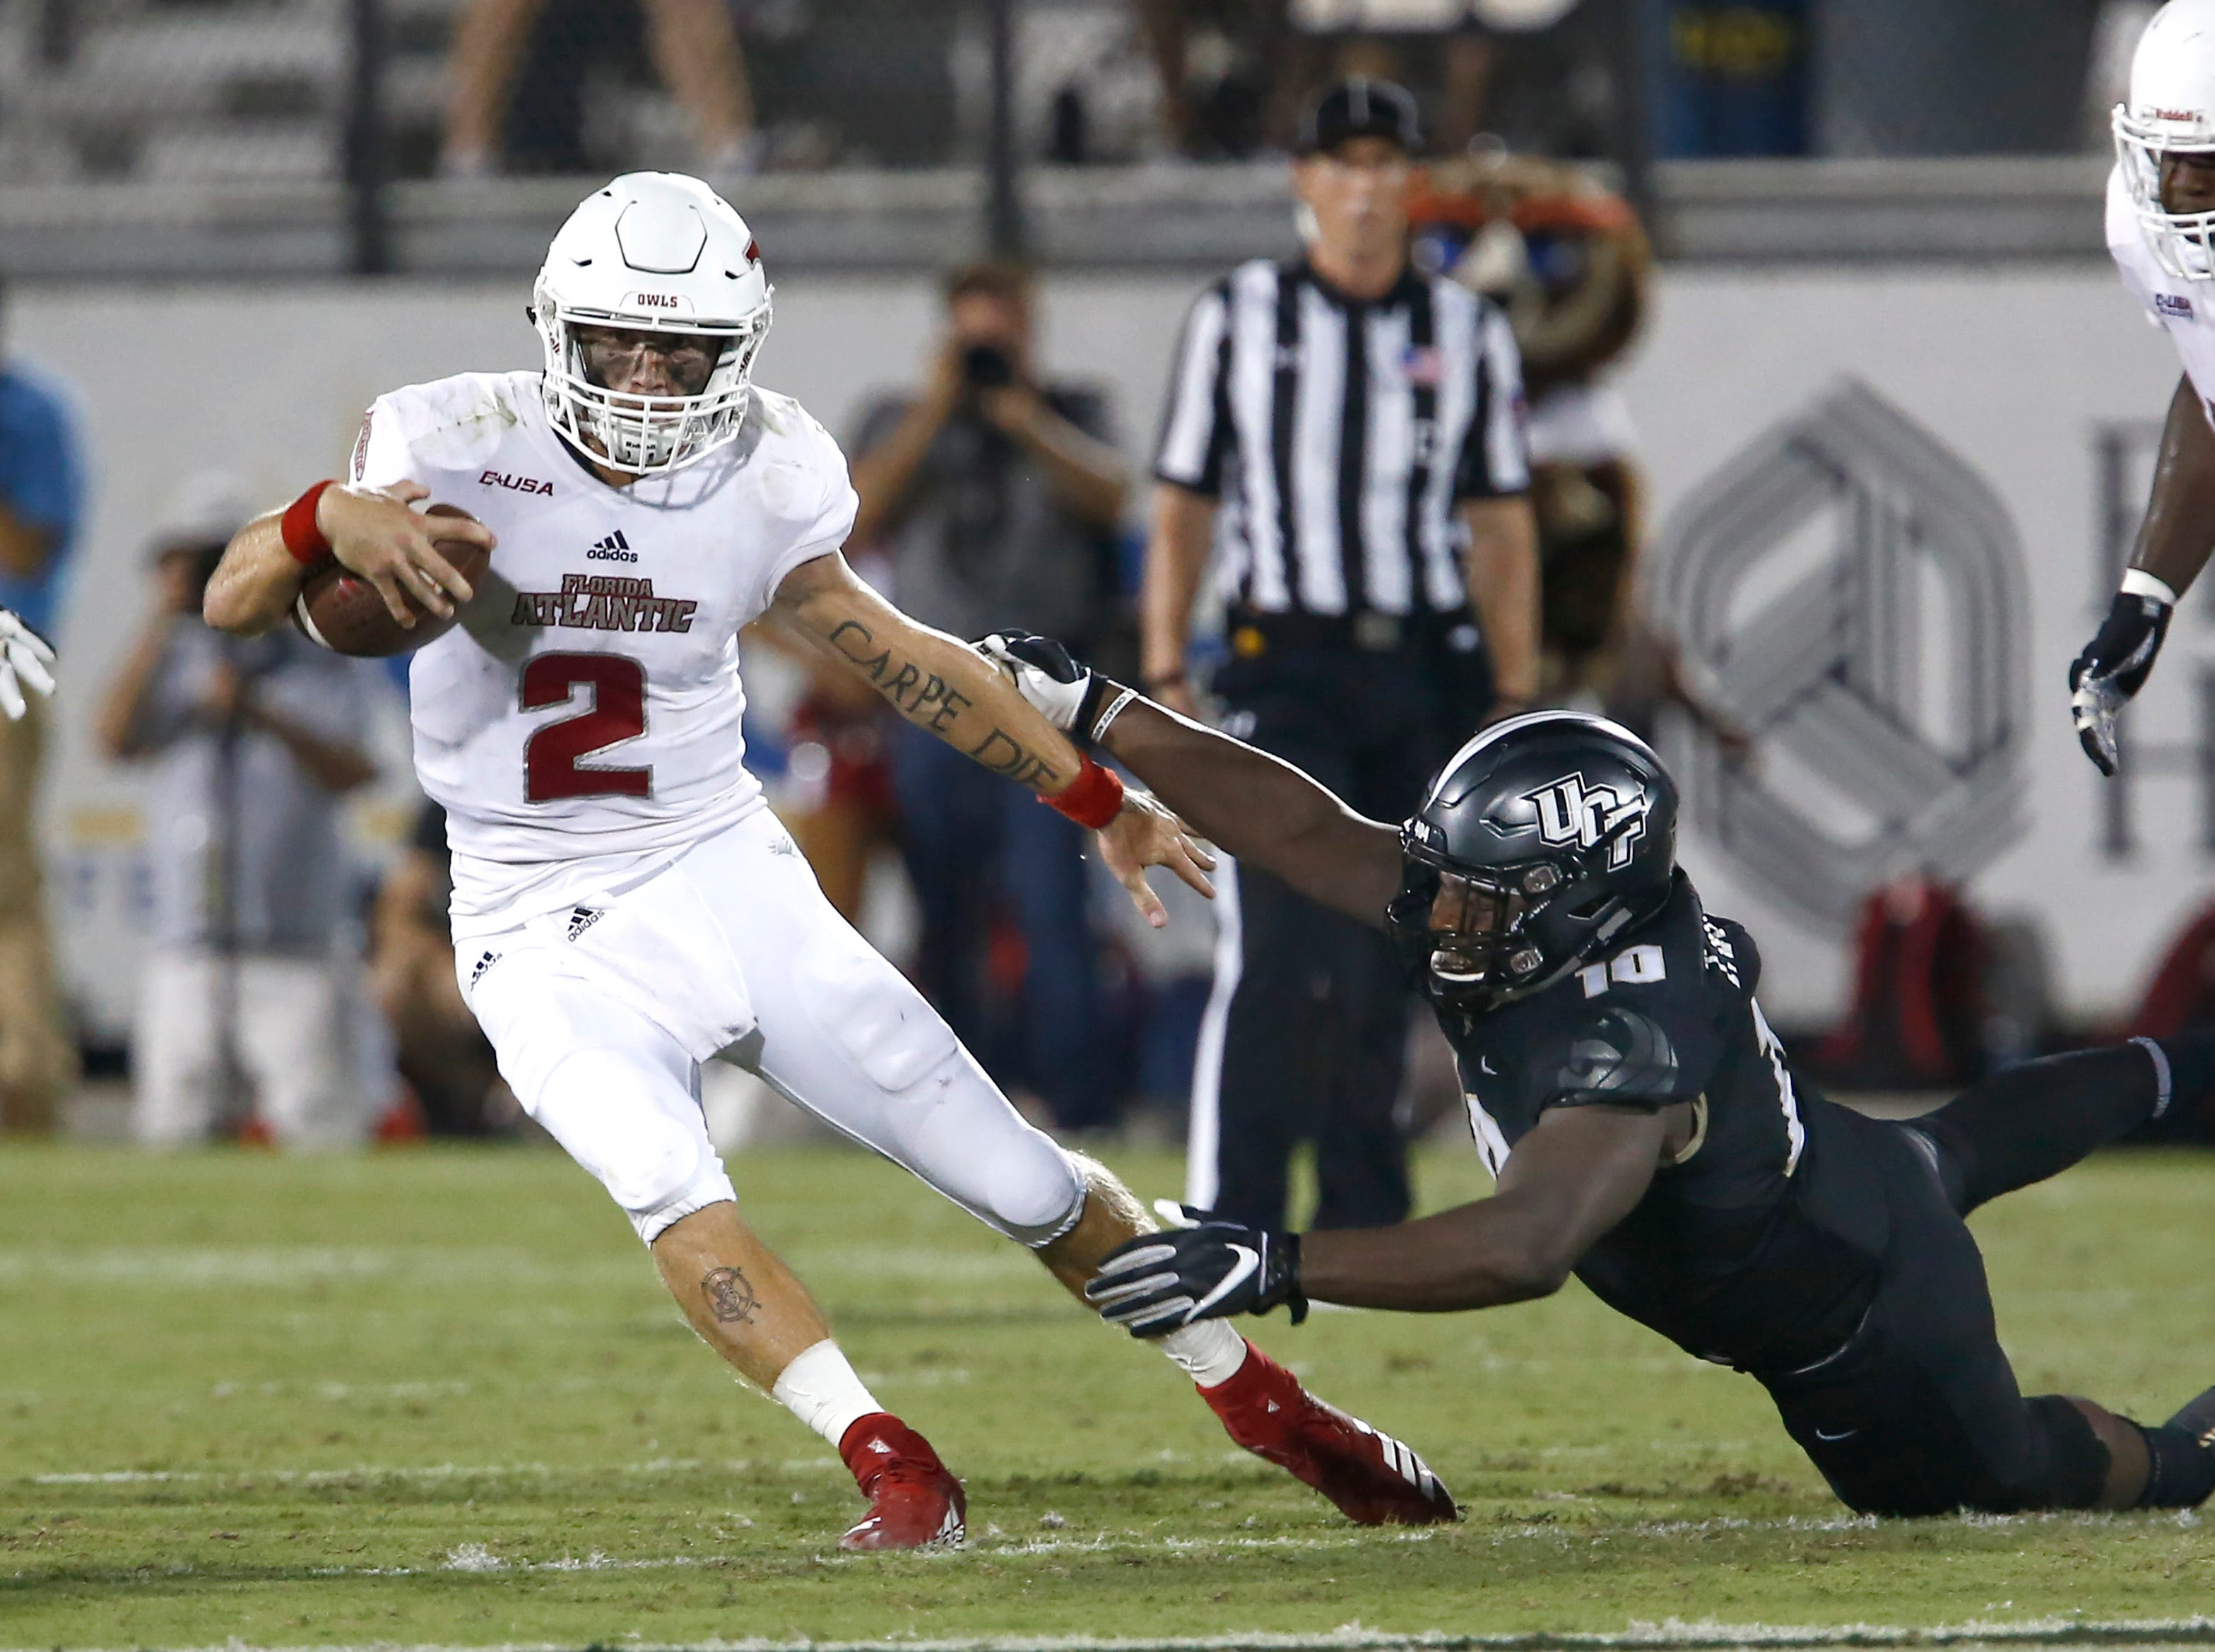 Florida Atlantic Owls quarterback Chris Robison (2) slips out of the grasp of UCF Knights defensive lineman Titus Davis (10) during the second quarter at Spectrum Stadium.